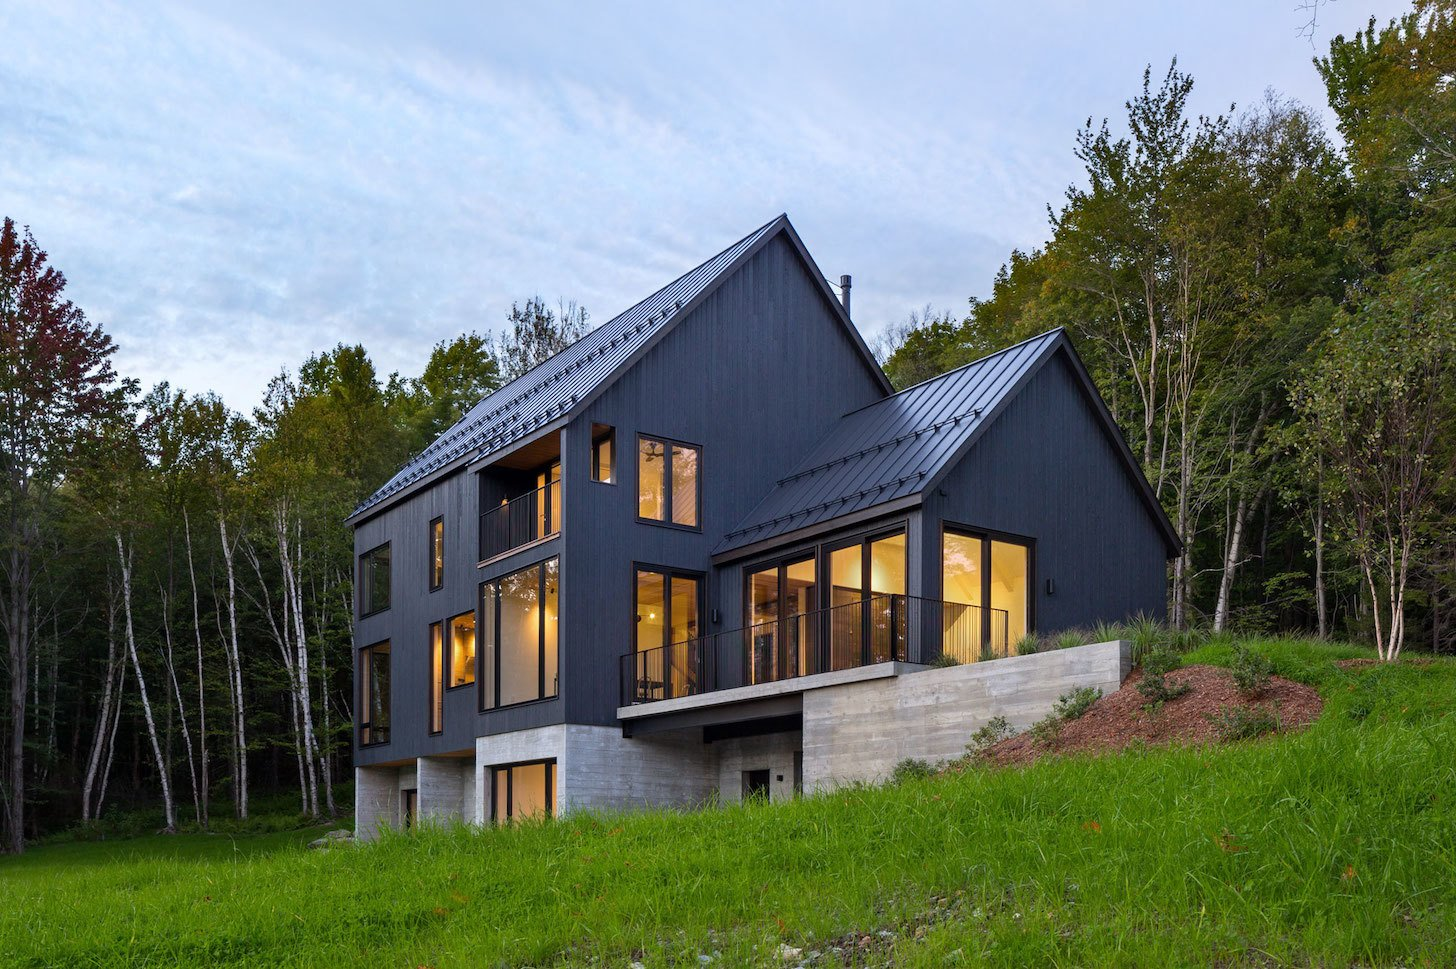 Exterior, Gable RoofLine, House Building Type, Wood Siding Material, Concrete Siding Material, and Metal Roof Material  Elemental House by Elizabeth Herrmann Architecture + Design